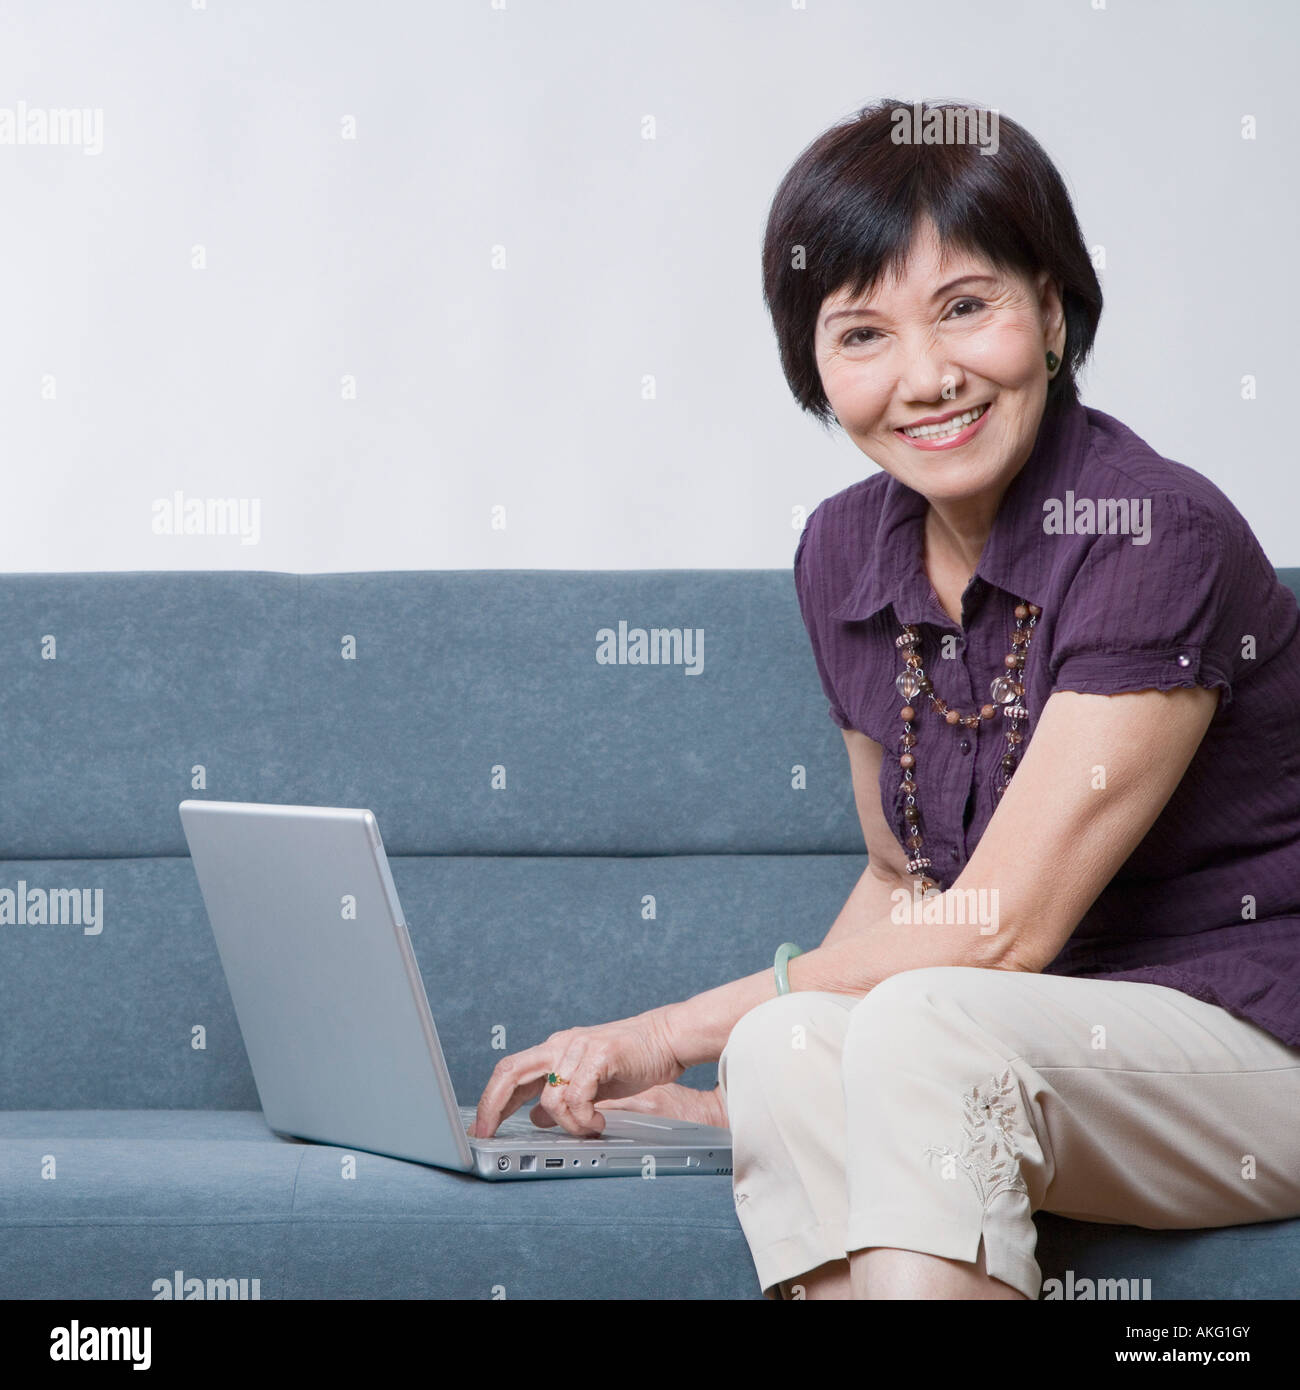 Portrait of a senior woman using a laptop and smiling - Stock Image